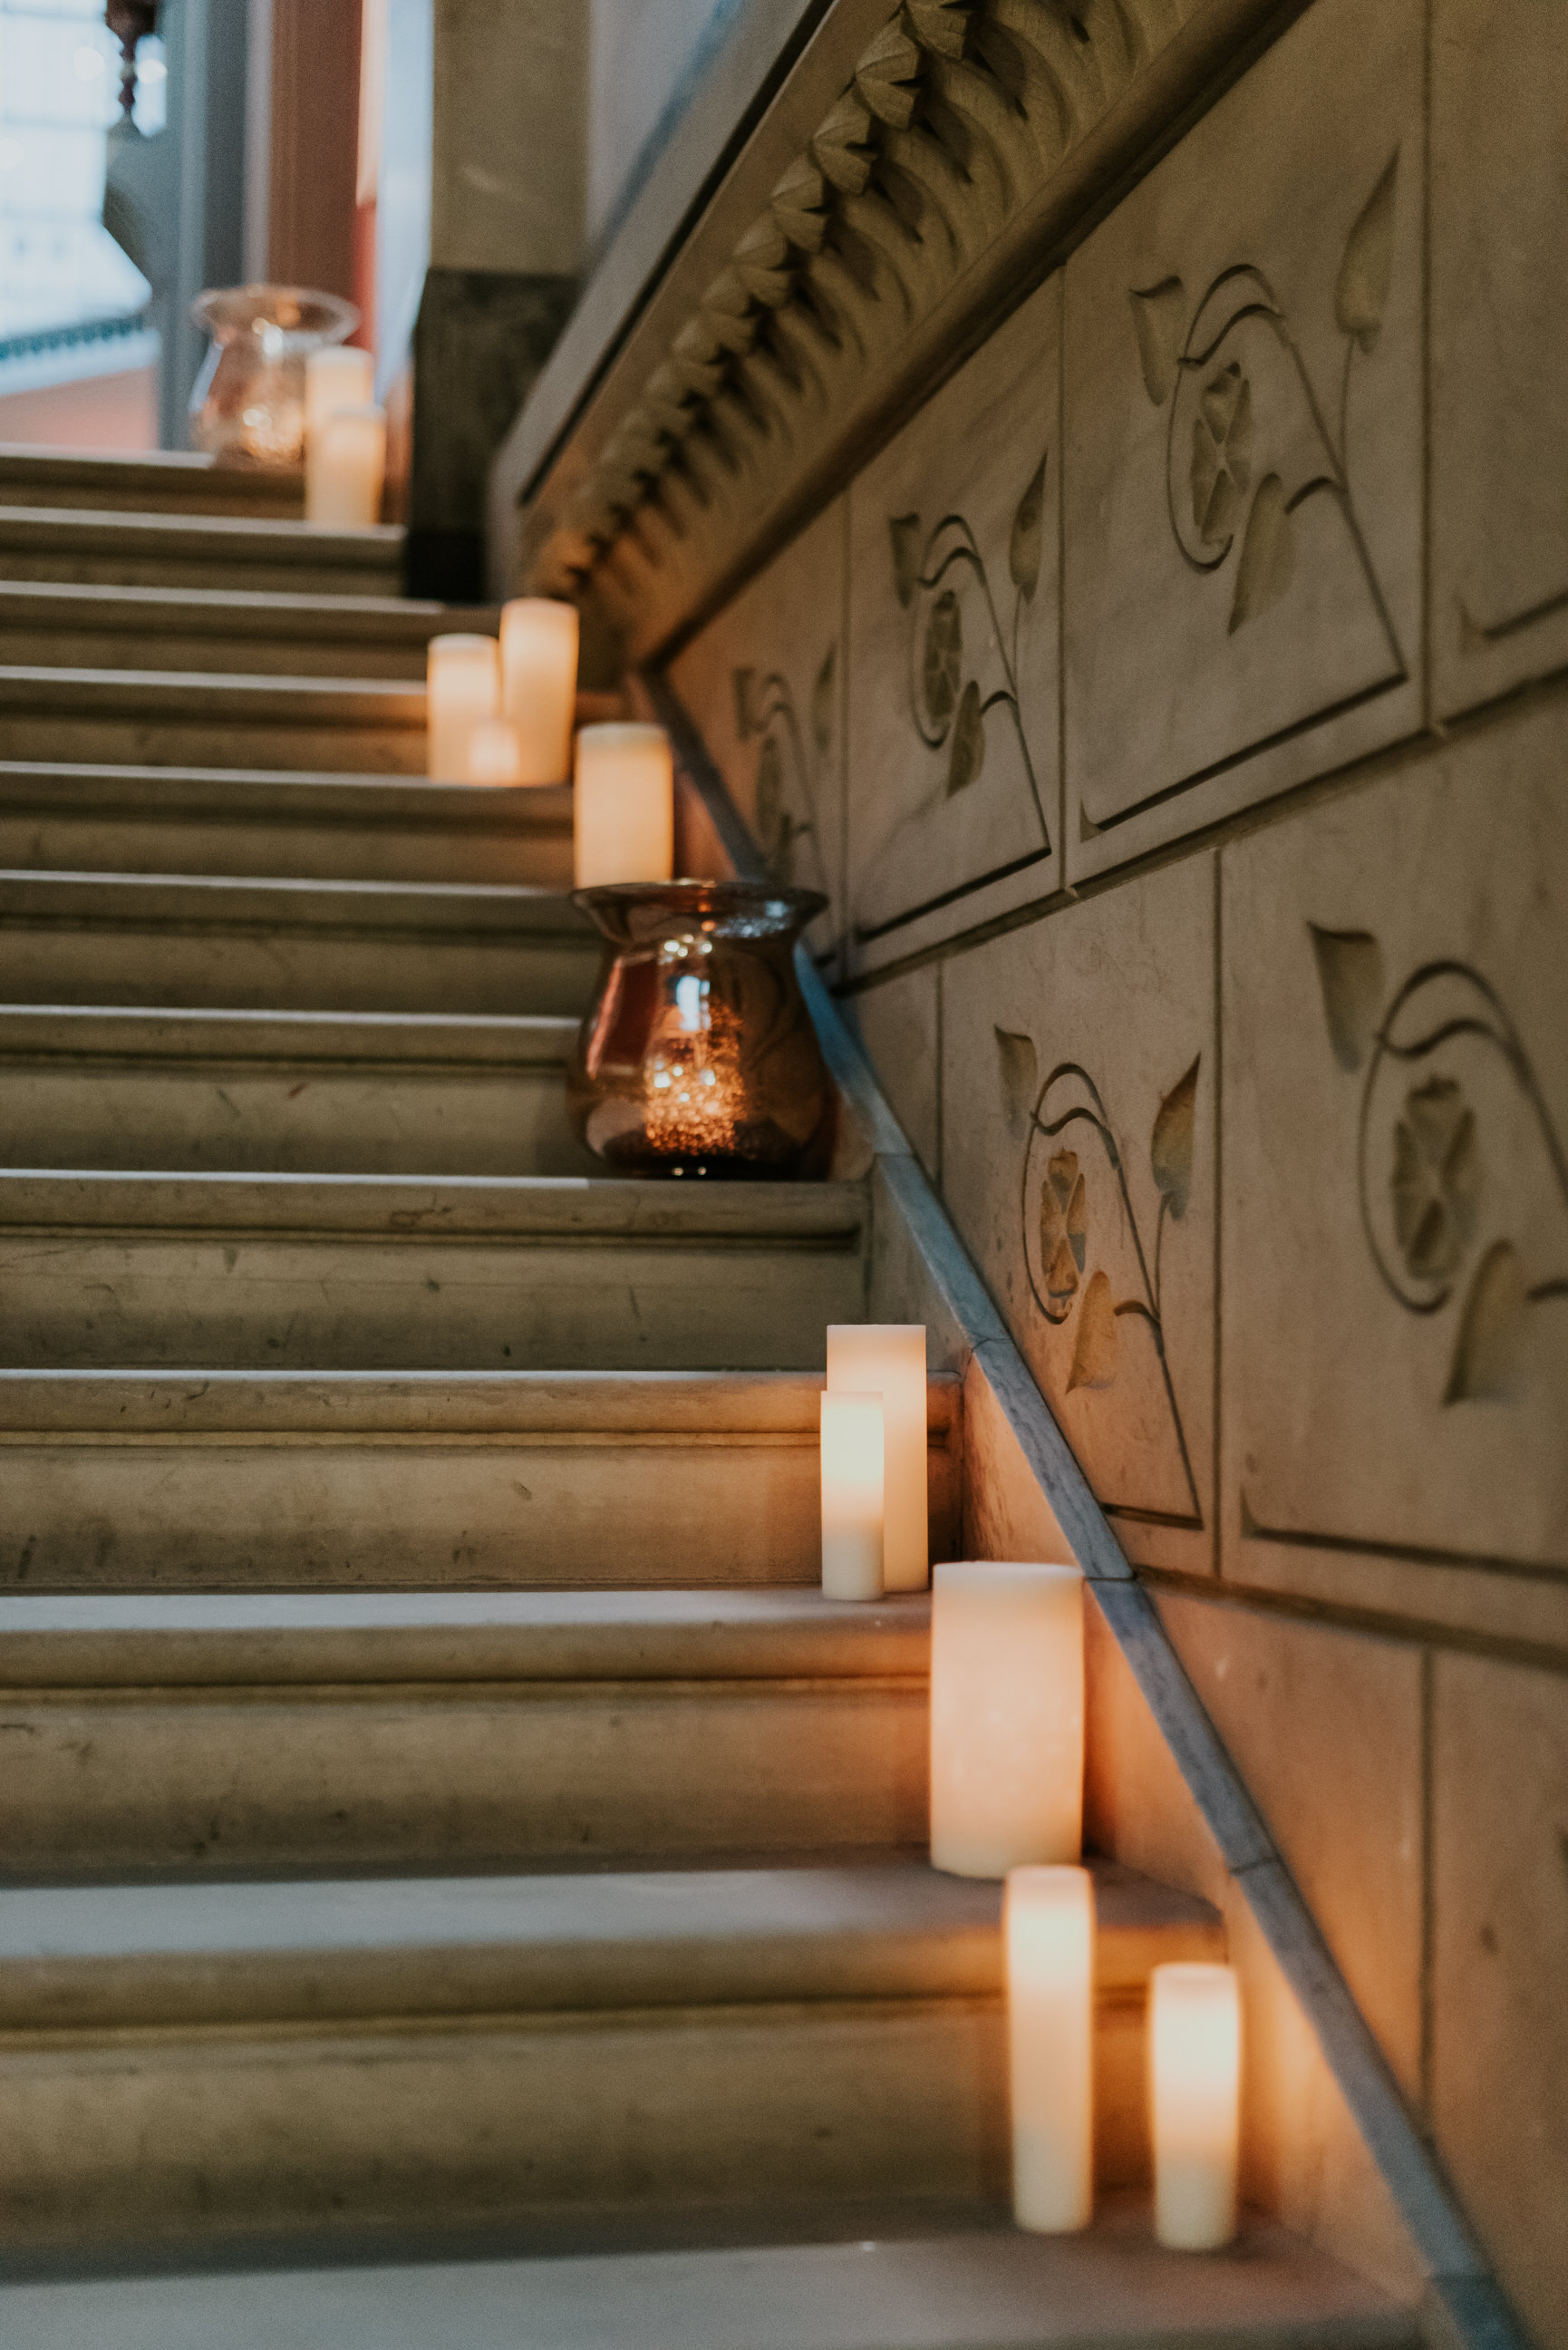 32 Philadelphia Wedding PAFA Grand Staircase Candlelight Aribella Events.jpg